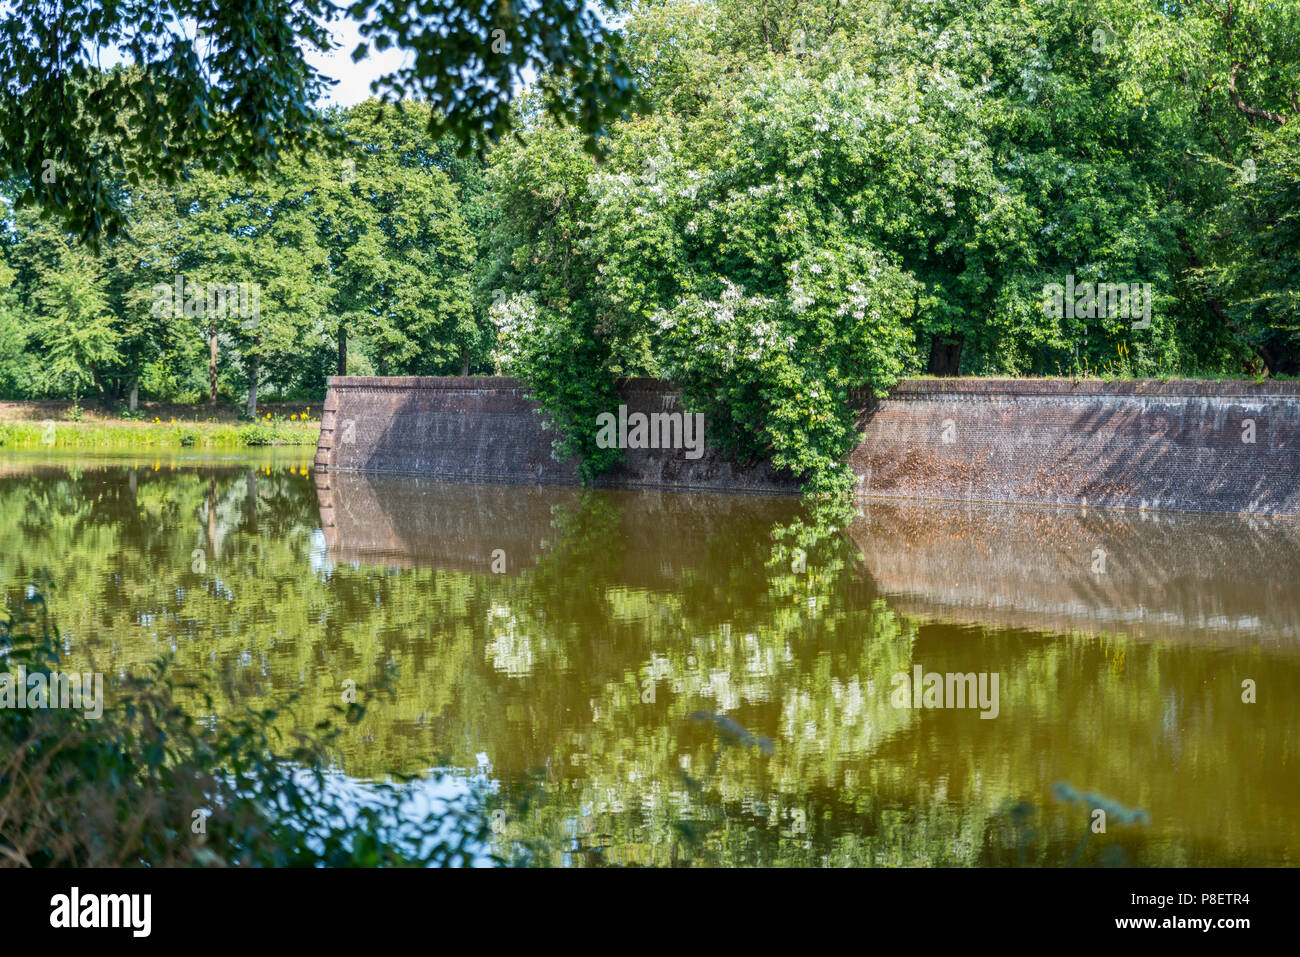 Bastion Oranje the old fortified town of Naarden with reflection of flowers in the water, North Holland, Netherlands, Dutch fortress in water surrounded Naarden Vesting - Stock Image